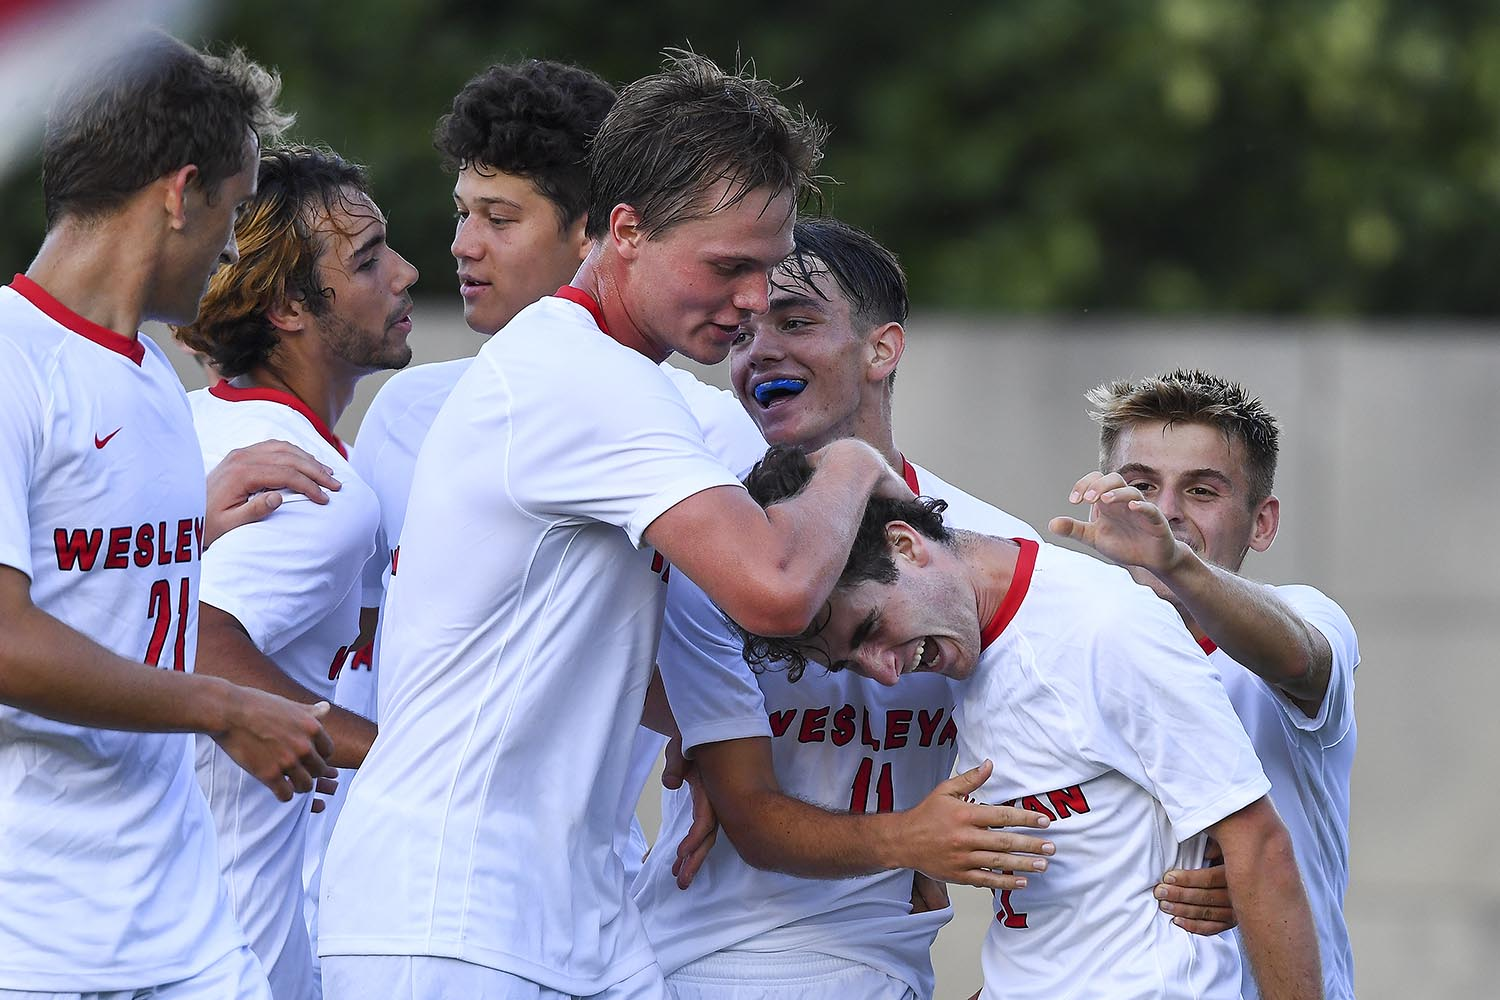 Three hundred spectators watched Wesleyan beat Emerson in men's soccer 2-0 on Sept. 7, the first game in the fall sports season.